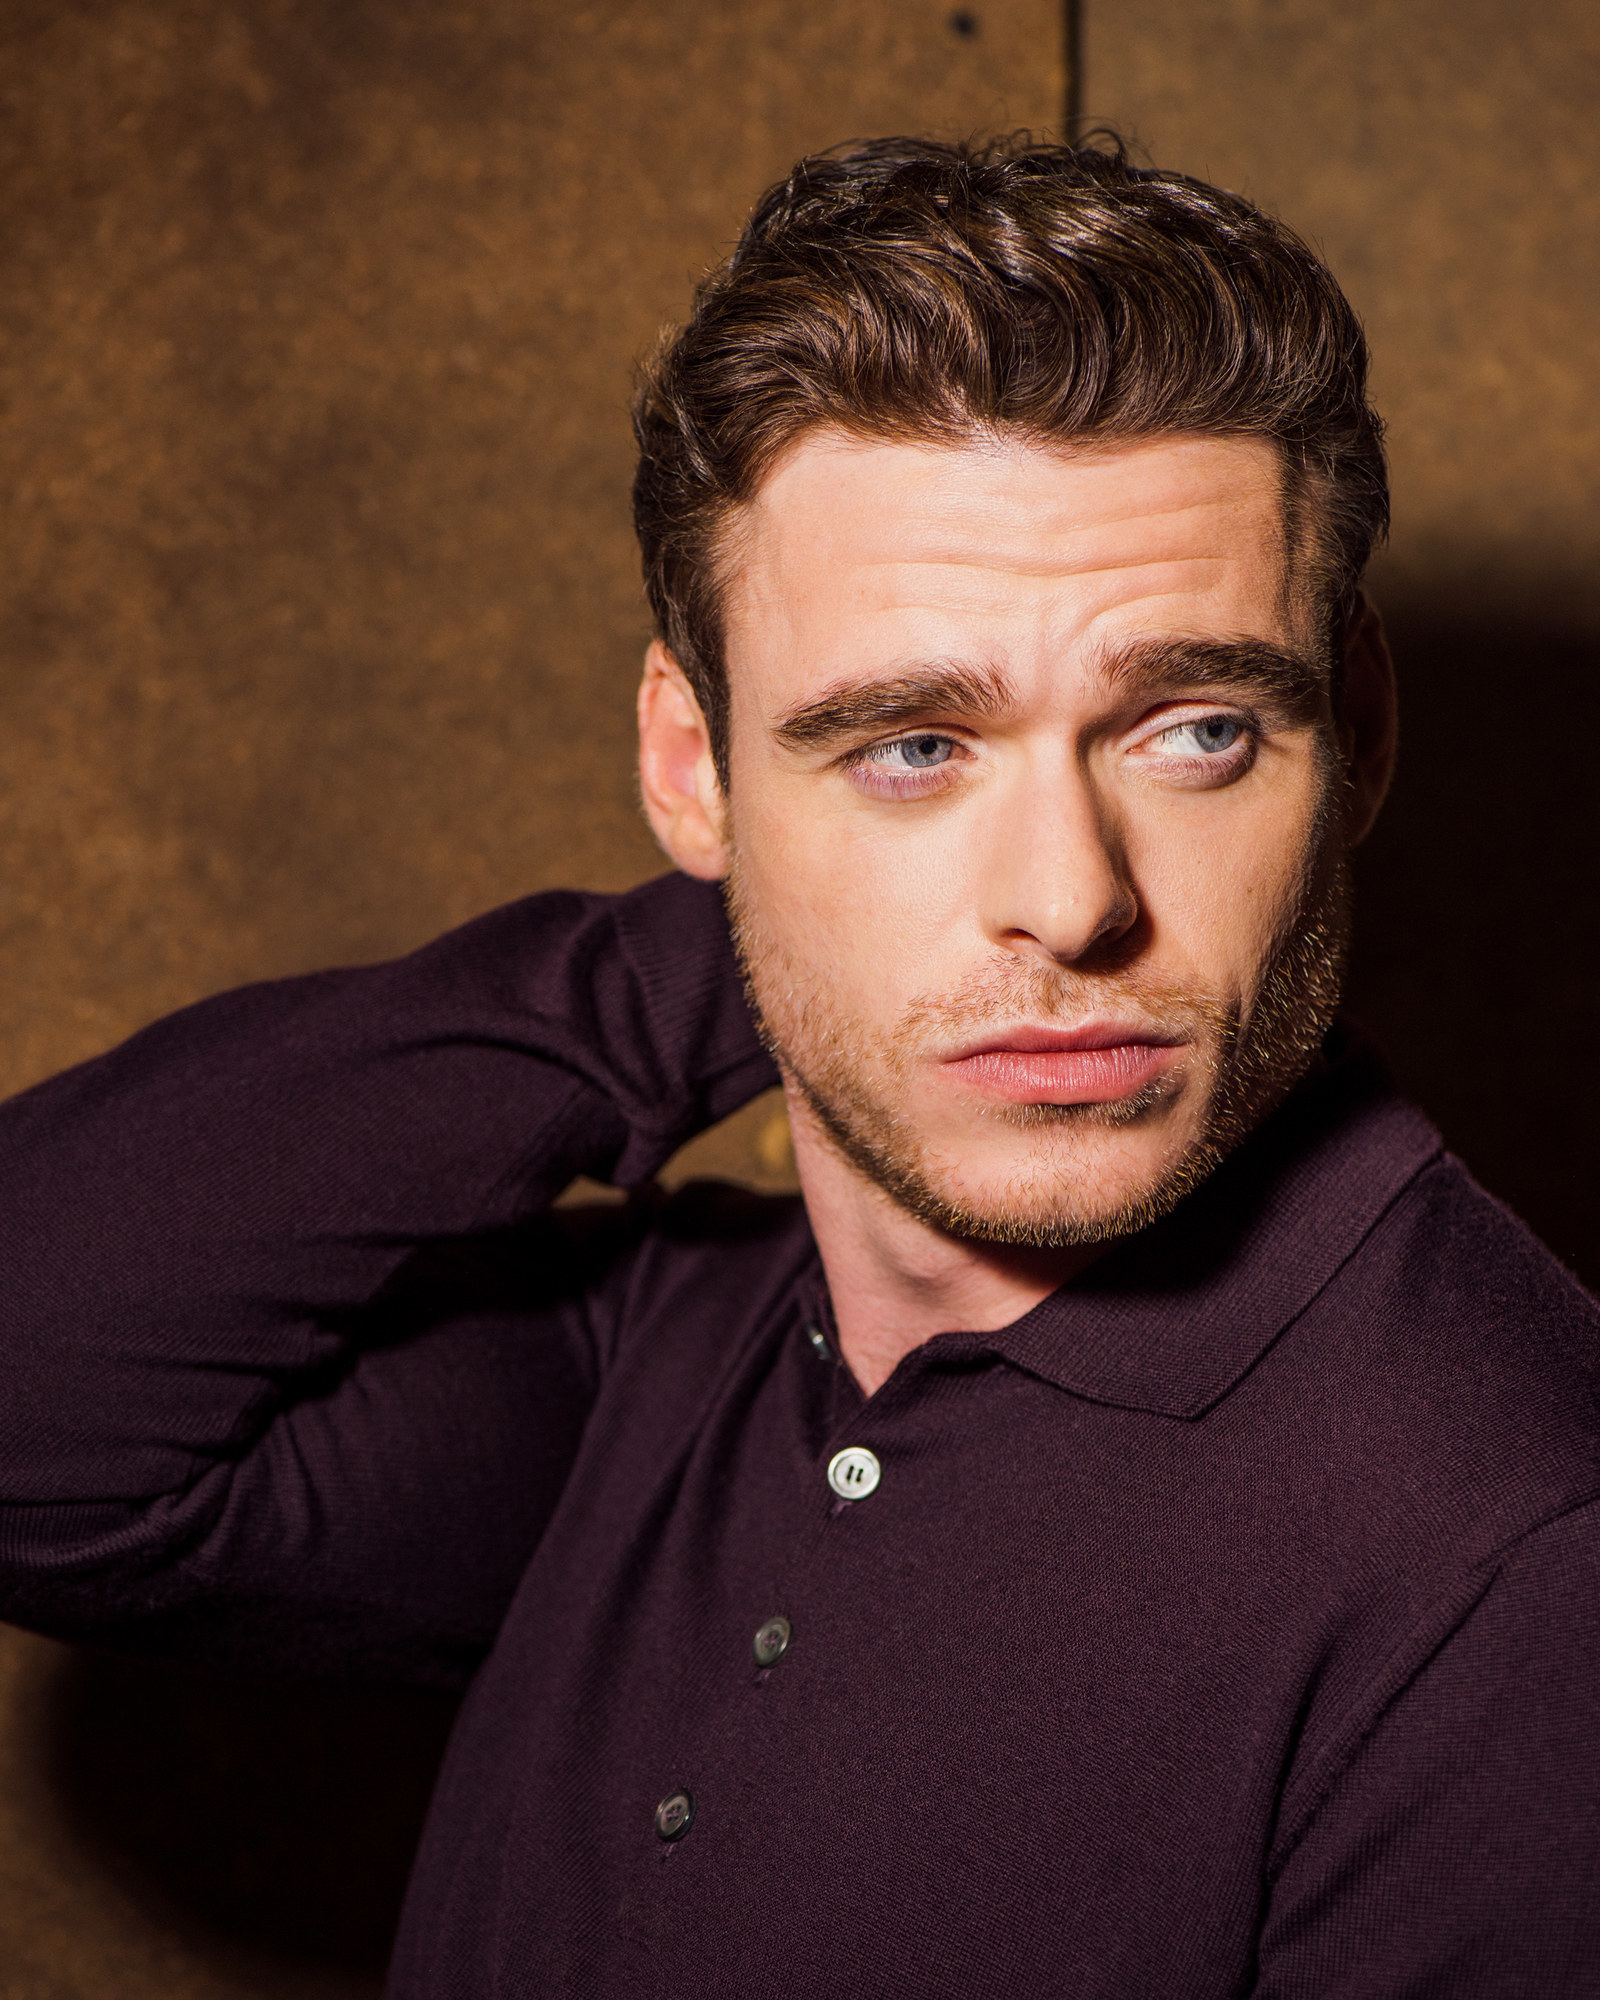 c3d1fefa767 ... dreamy Prince in 2015 s Cinderella to winning us over as the rugged  Robb Stark in Game of Thrones